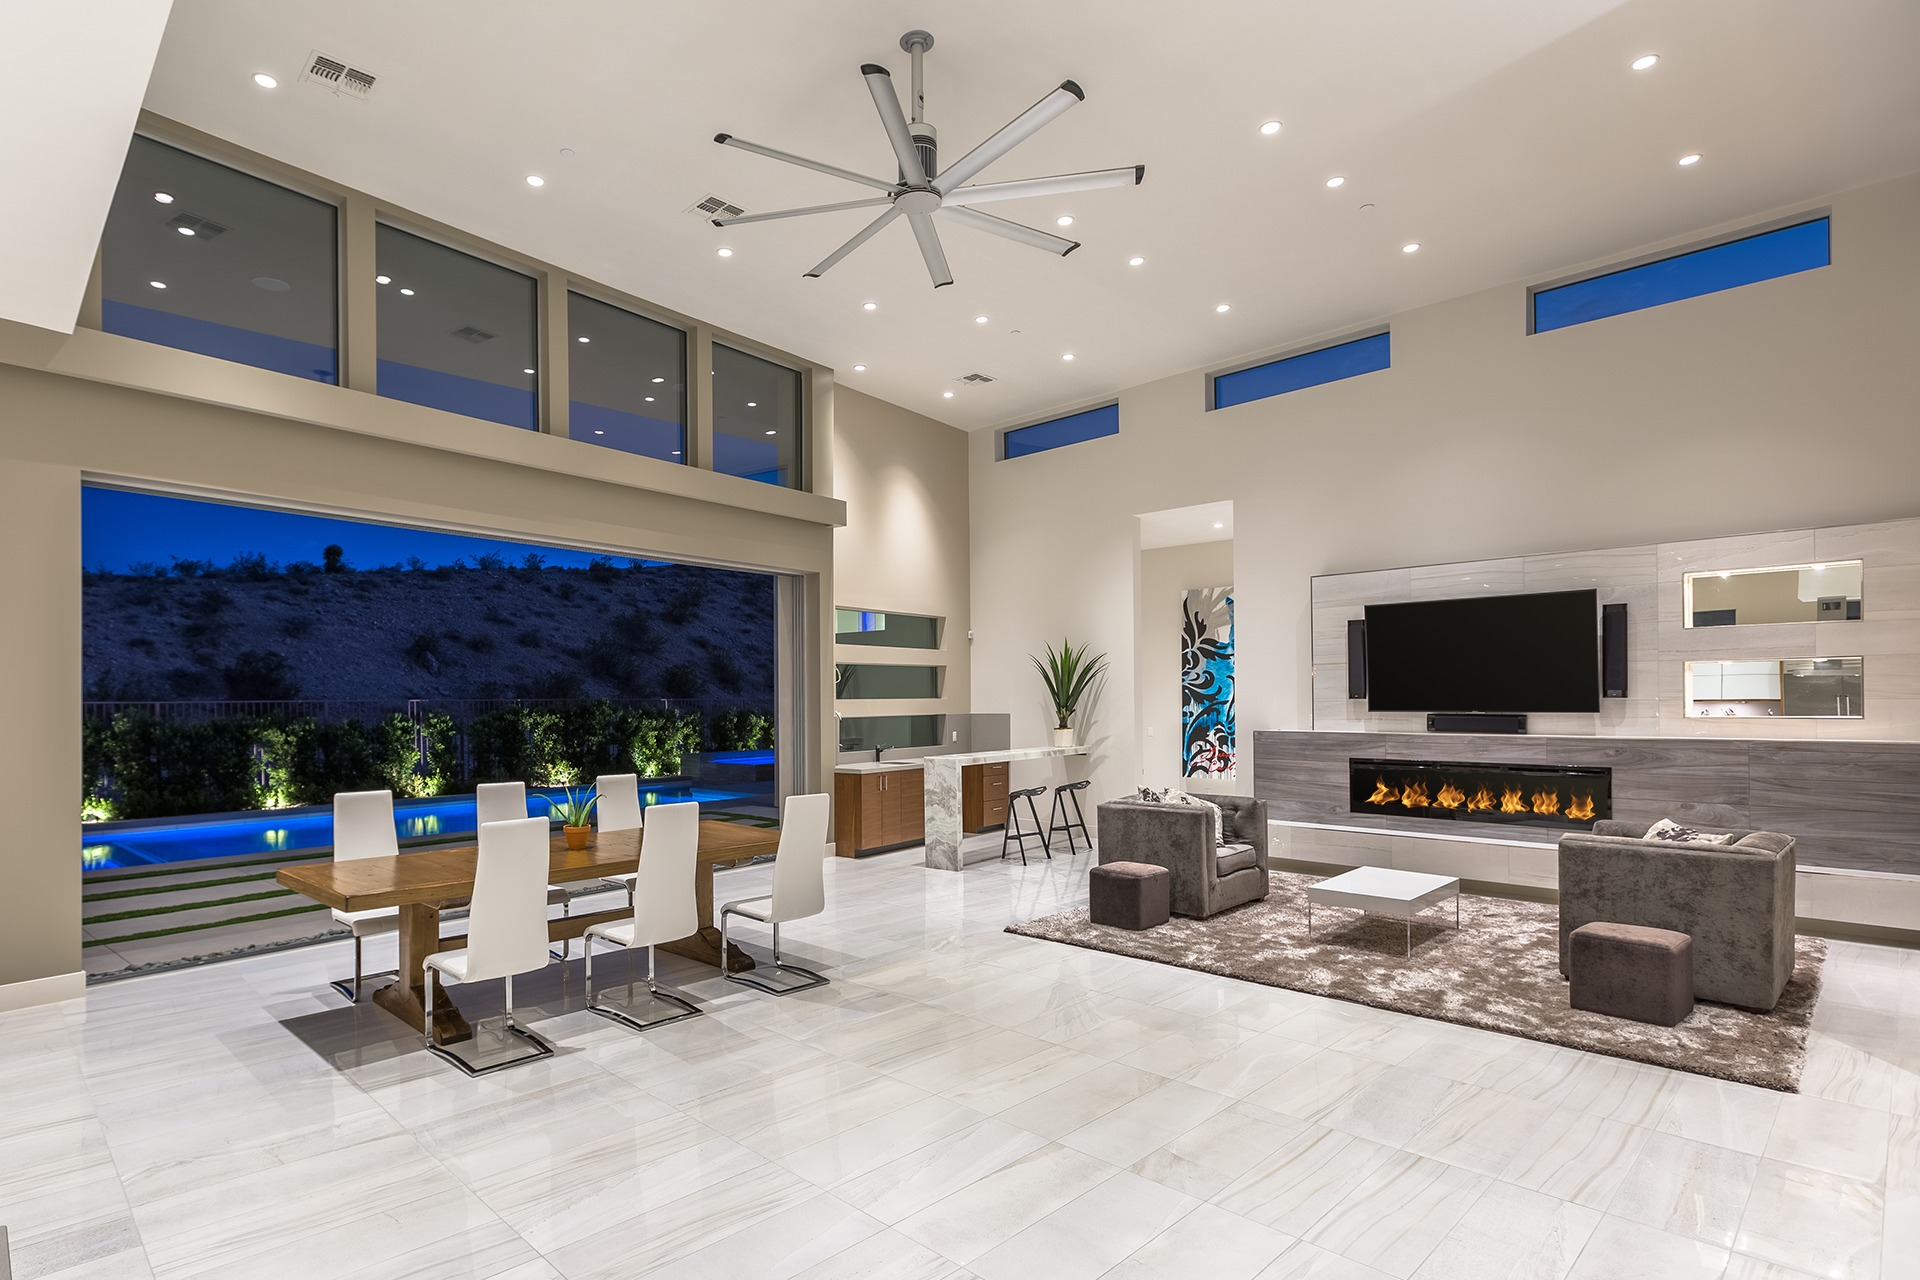 David marquardt architectural photography las vegas for Las vegas interior designers